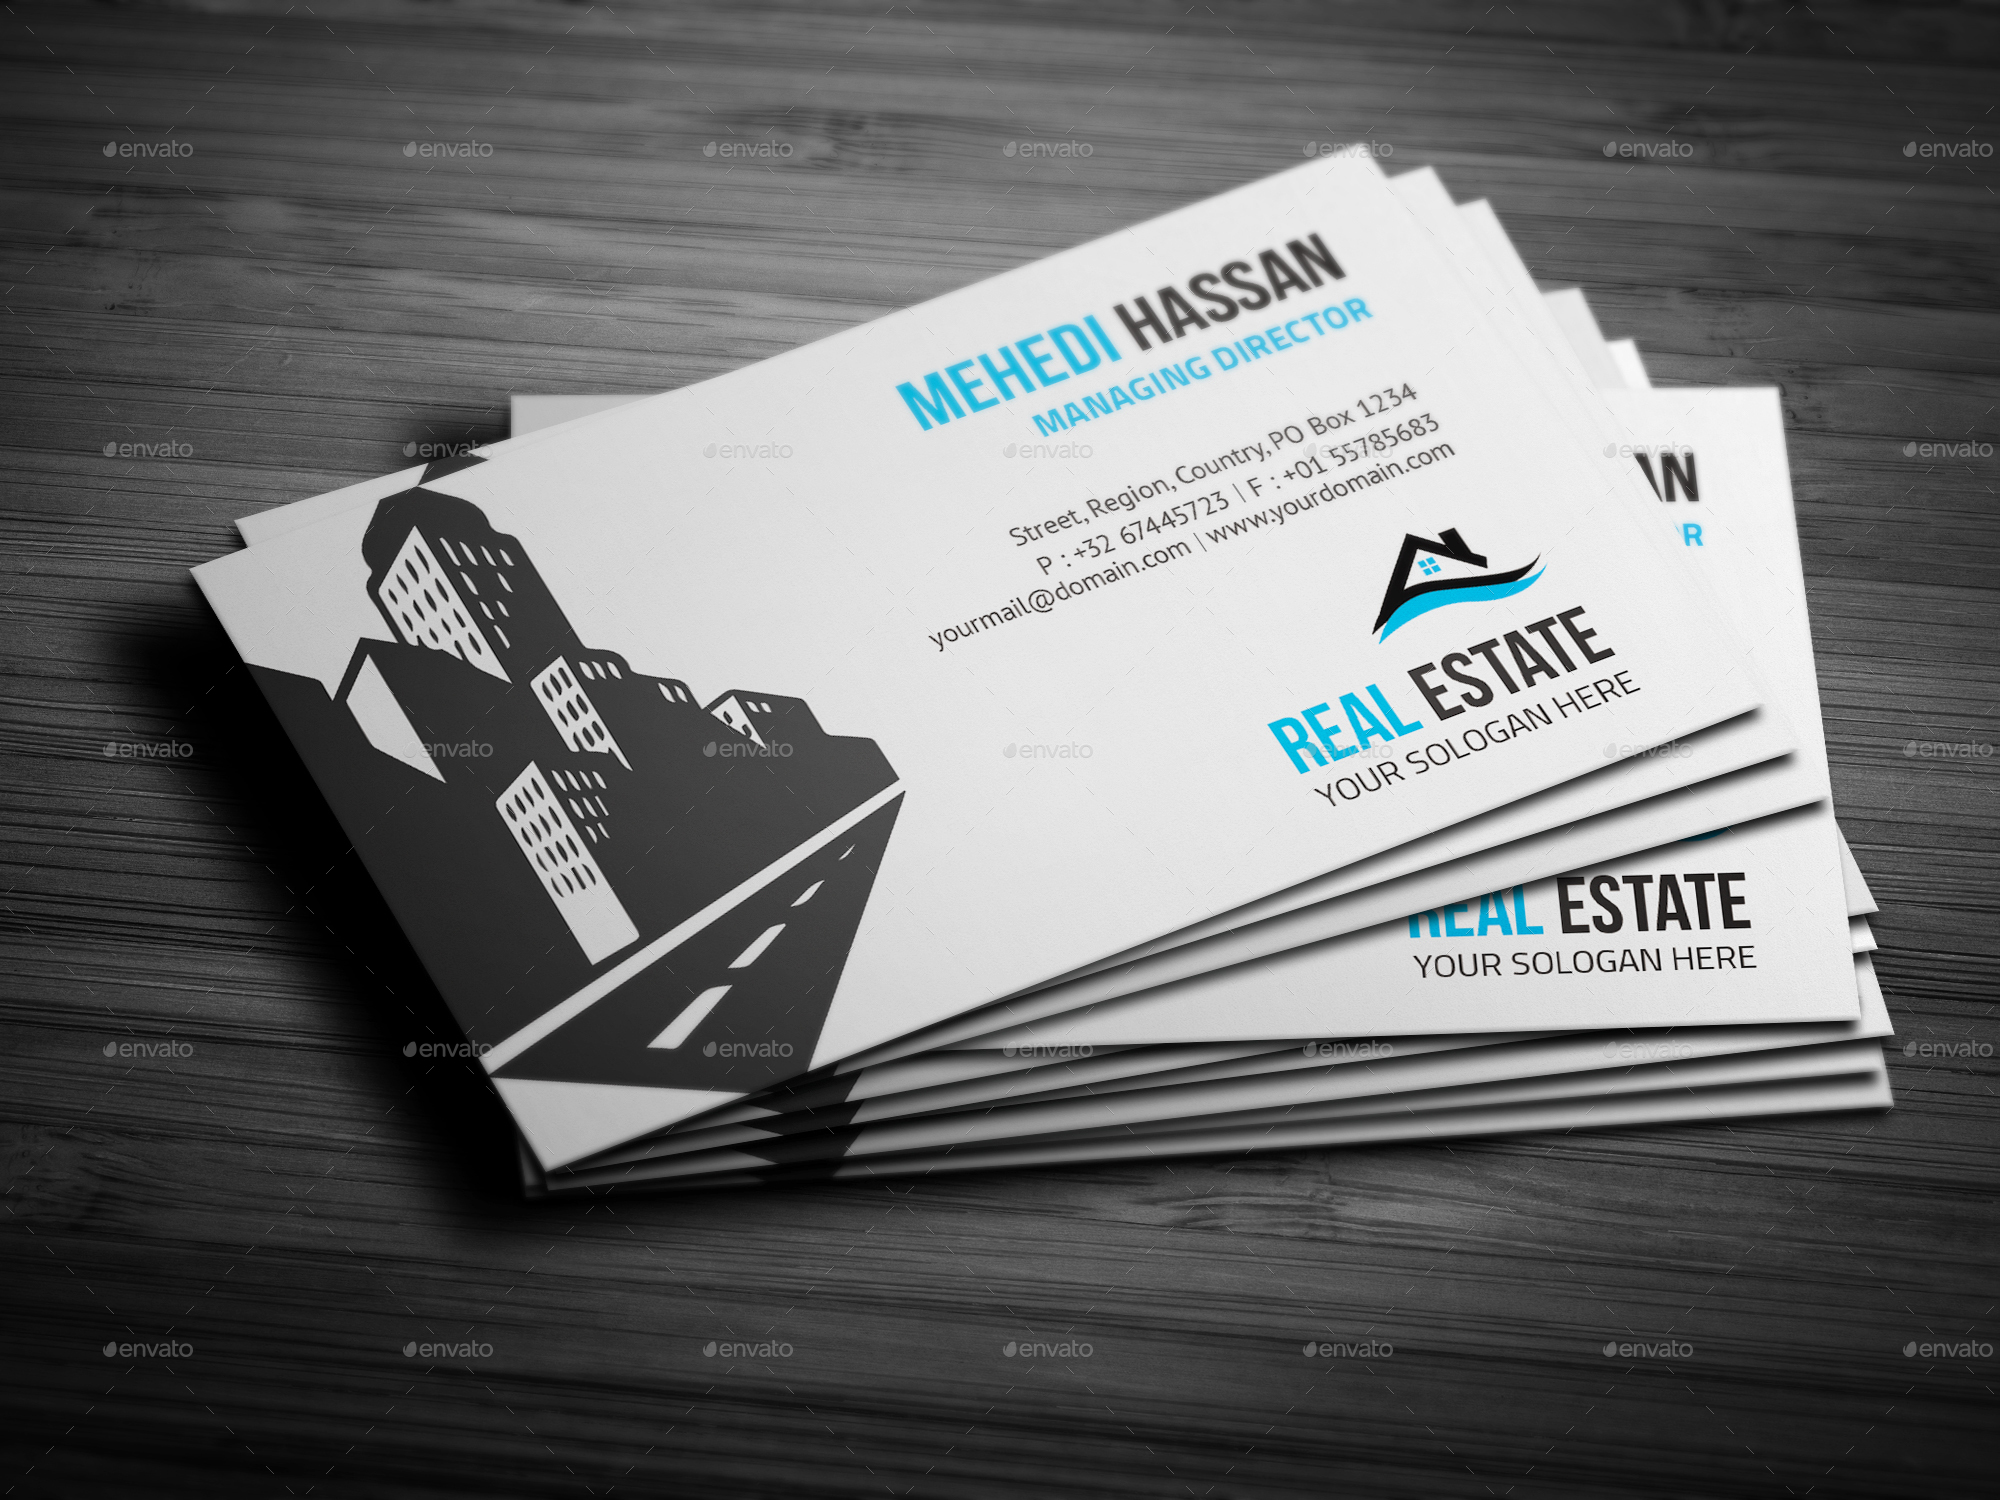 real estate business card by mehedi hassan